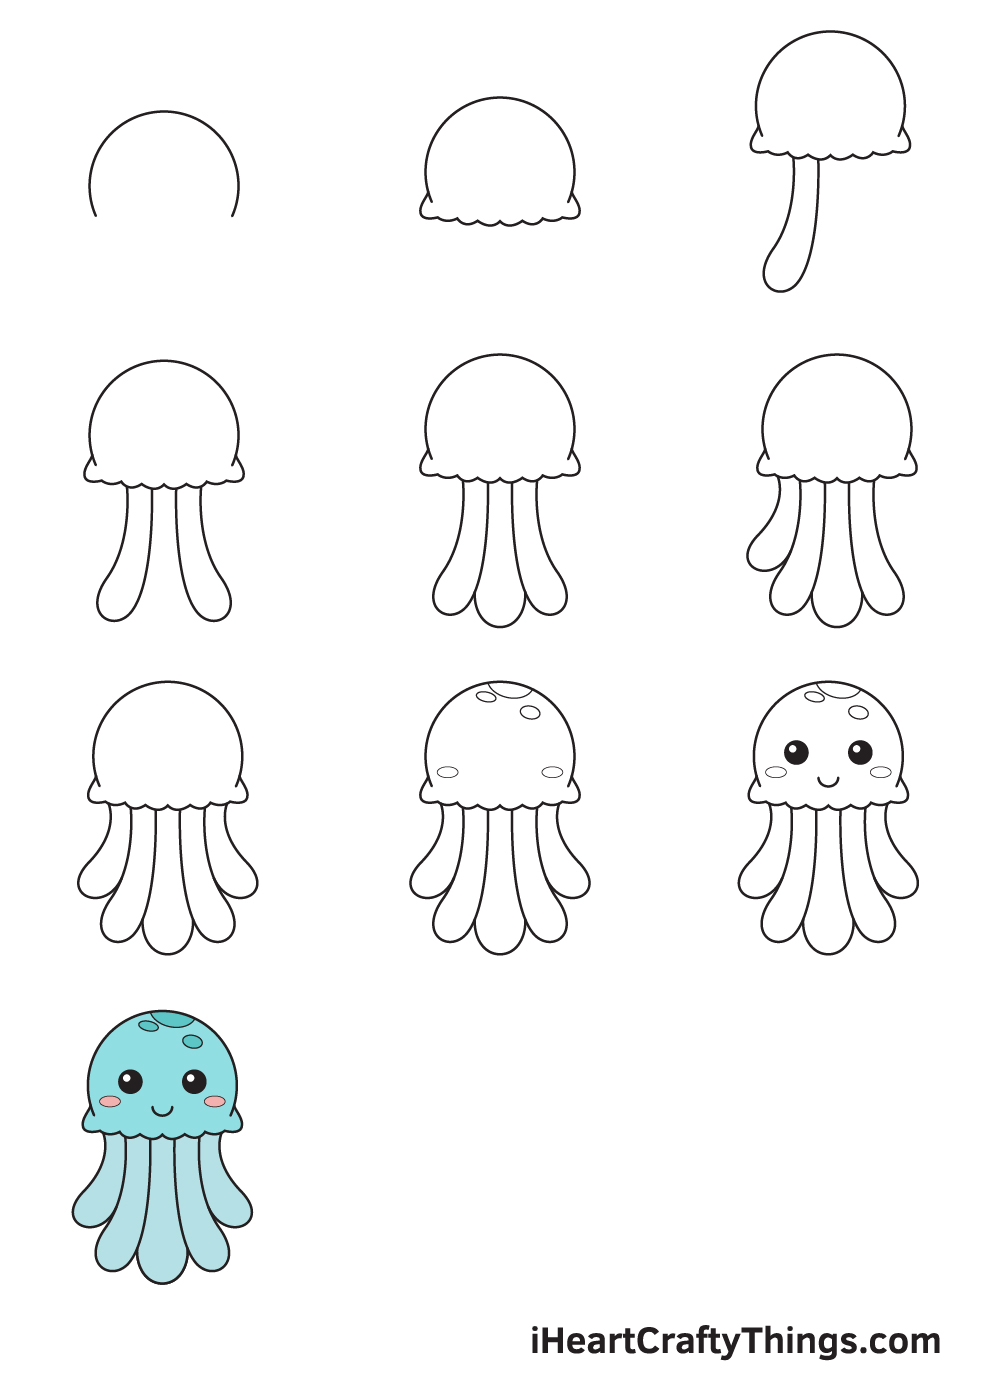 drawing jellyfish in 9 steps